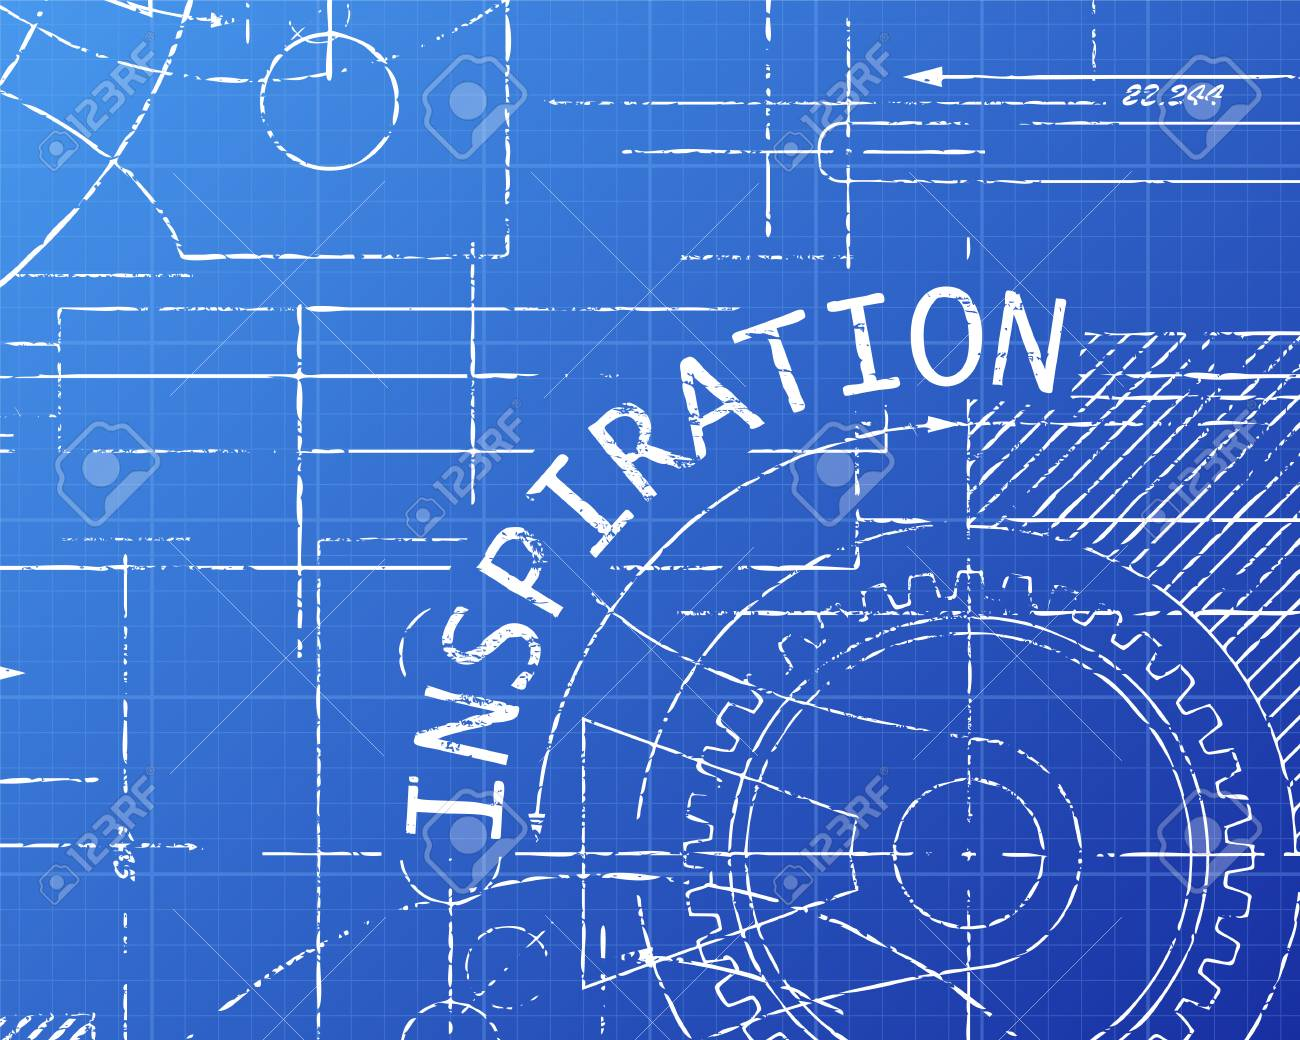 Inspiration text with gear wheels hand drawn on blueprint technical inspiration text with gear wheels hand drawn on blueprint technical drawing background stock vector 74470620 malvernweather Gallery